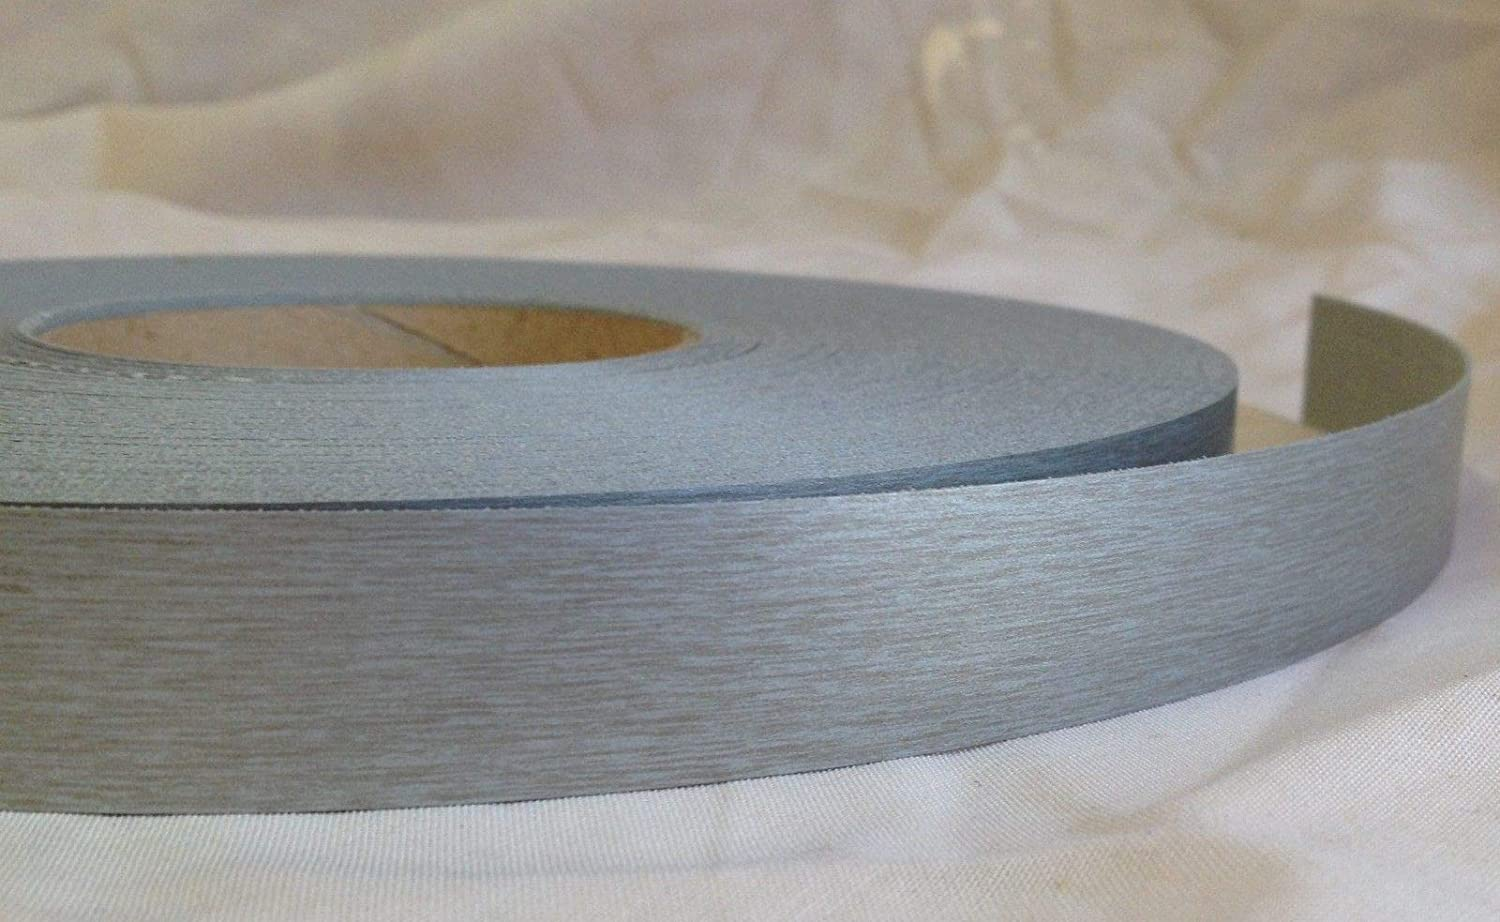 Pre Glued Iron on Melamine Brushed Aluminium Edging Tape 22mm wide Various Lengths .Free Postage (10 metres)